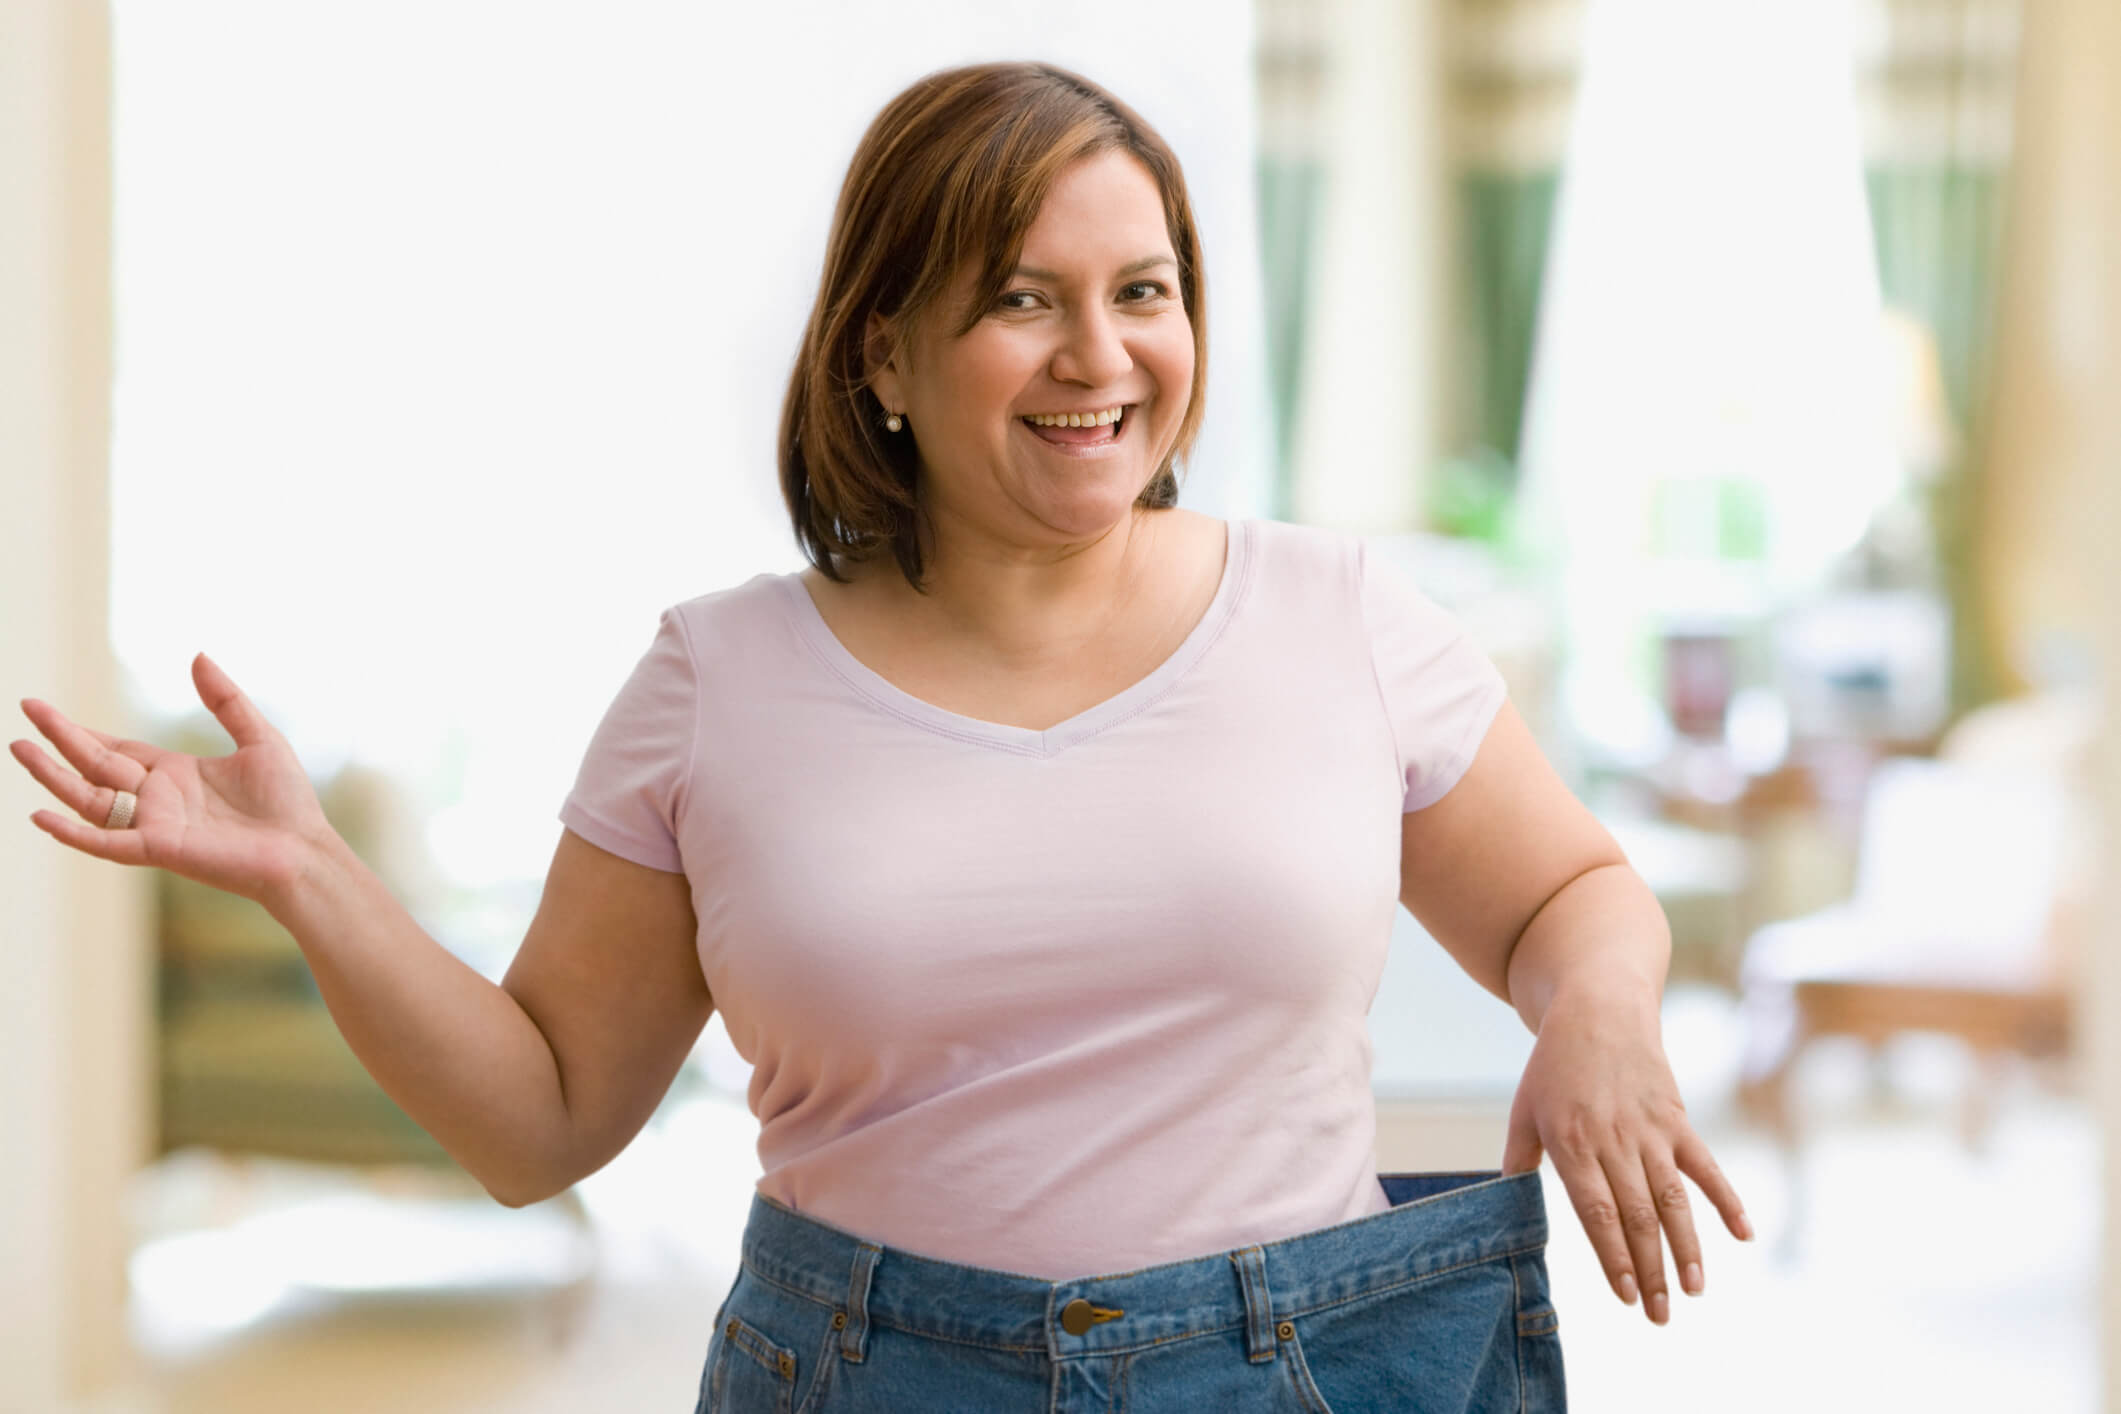 Weight loss injections: what is the cost?